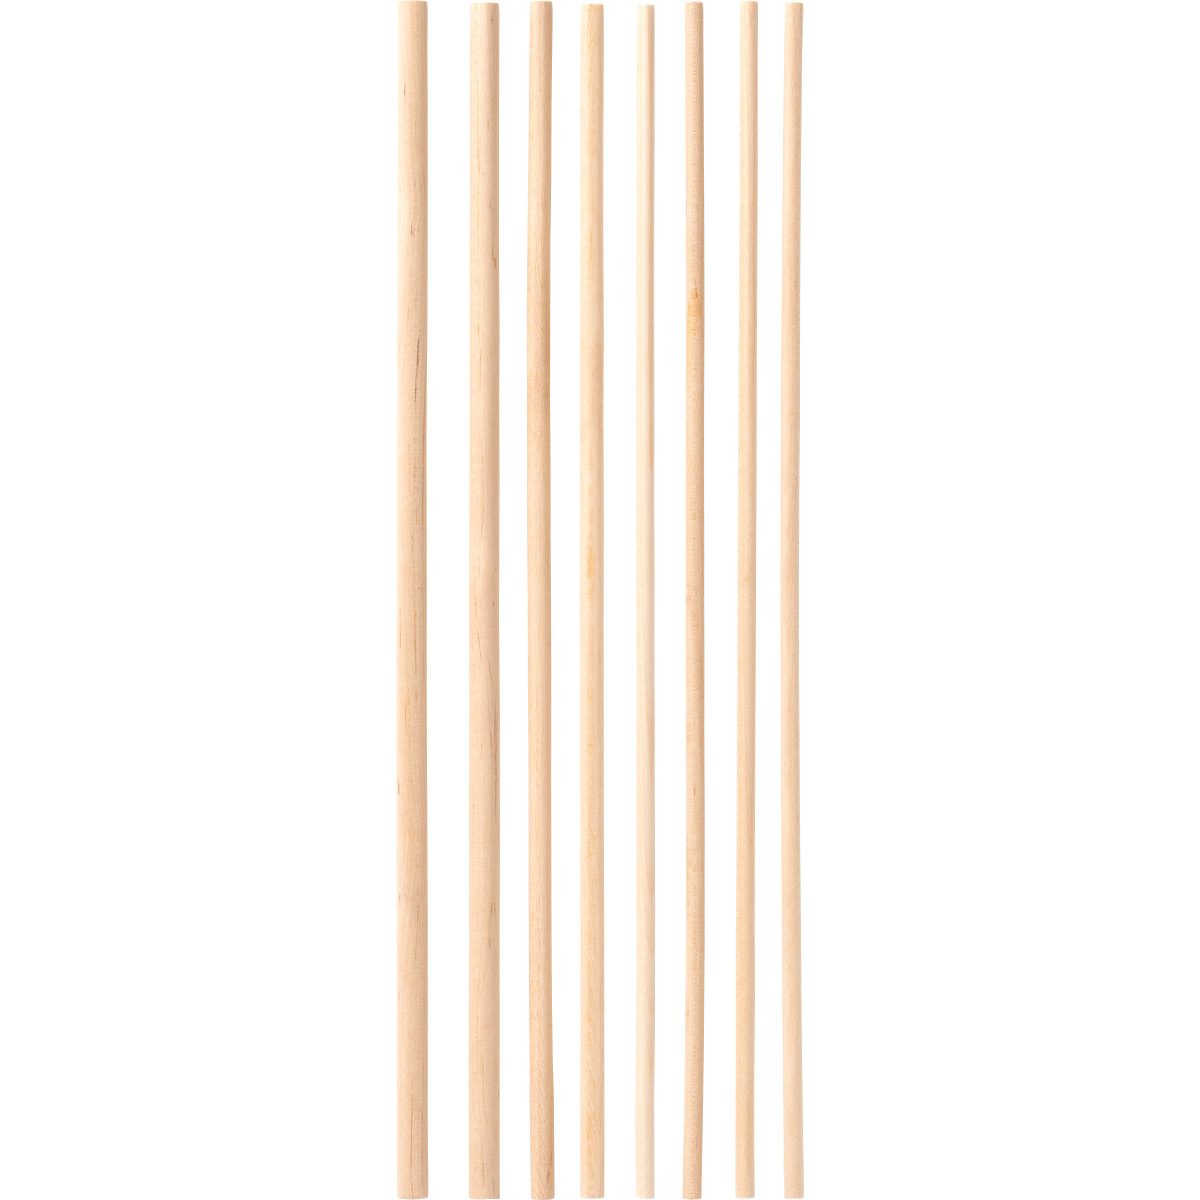 Plaid ® Painter's Palette™ Wood Dowels, 8 pcs. - 39553